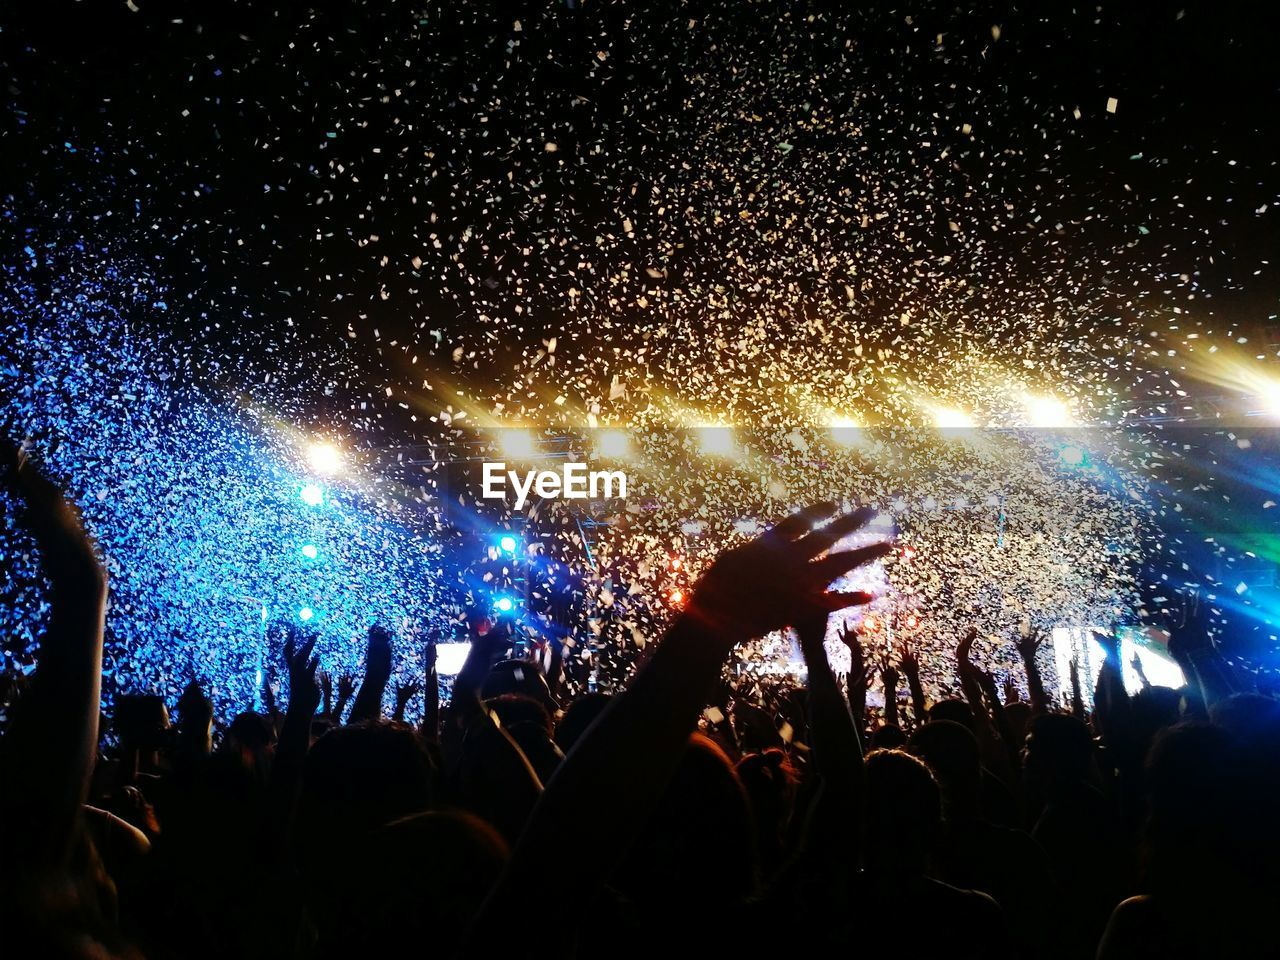 Crowd enjoying against illuminated stage with confetti during music concert